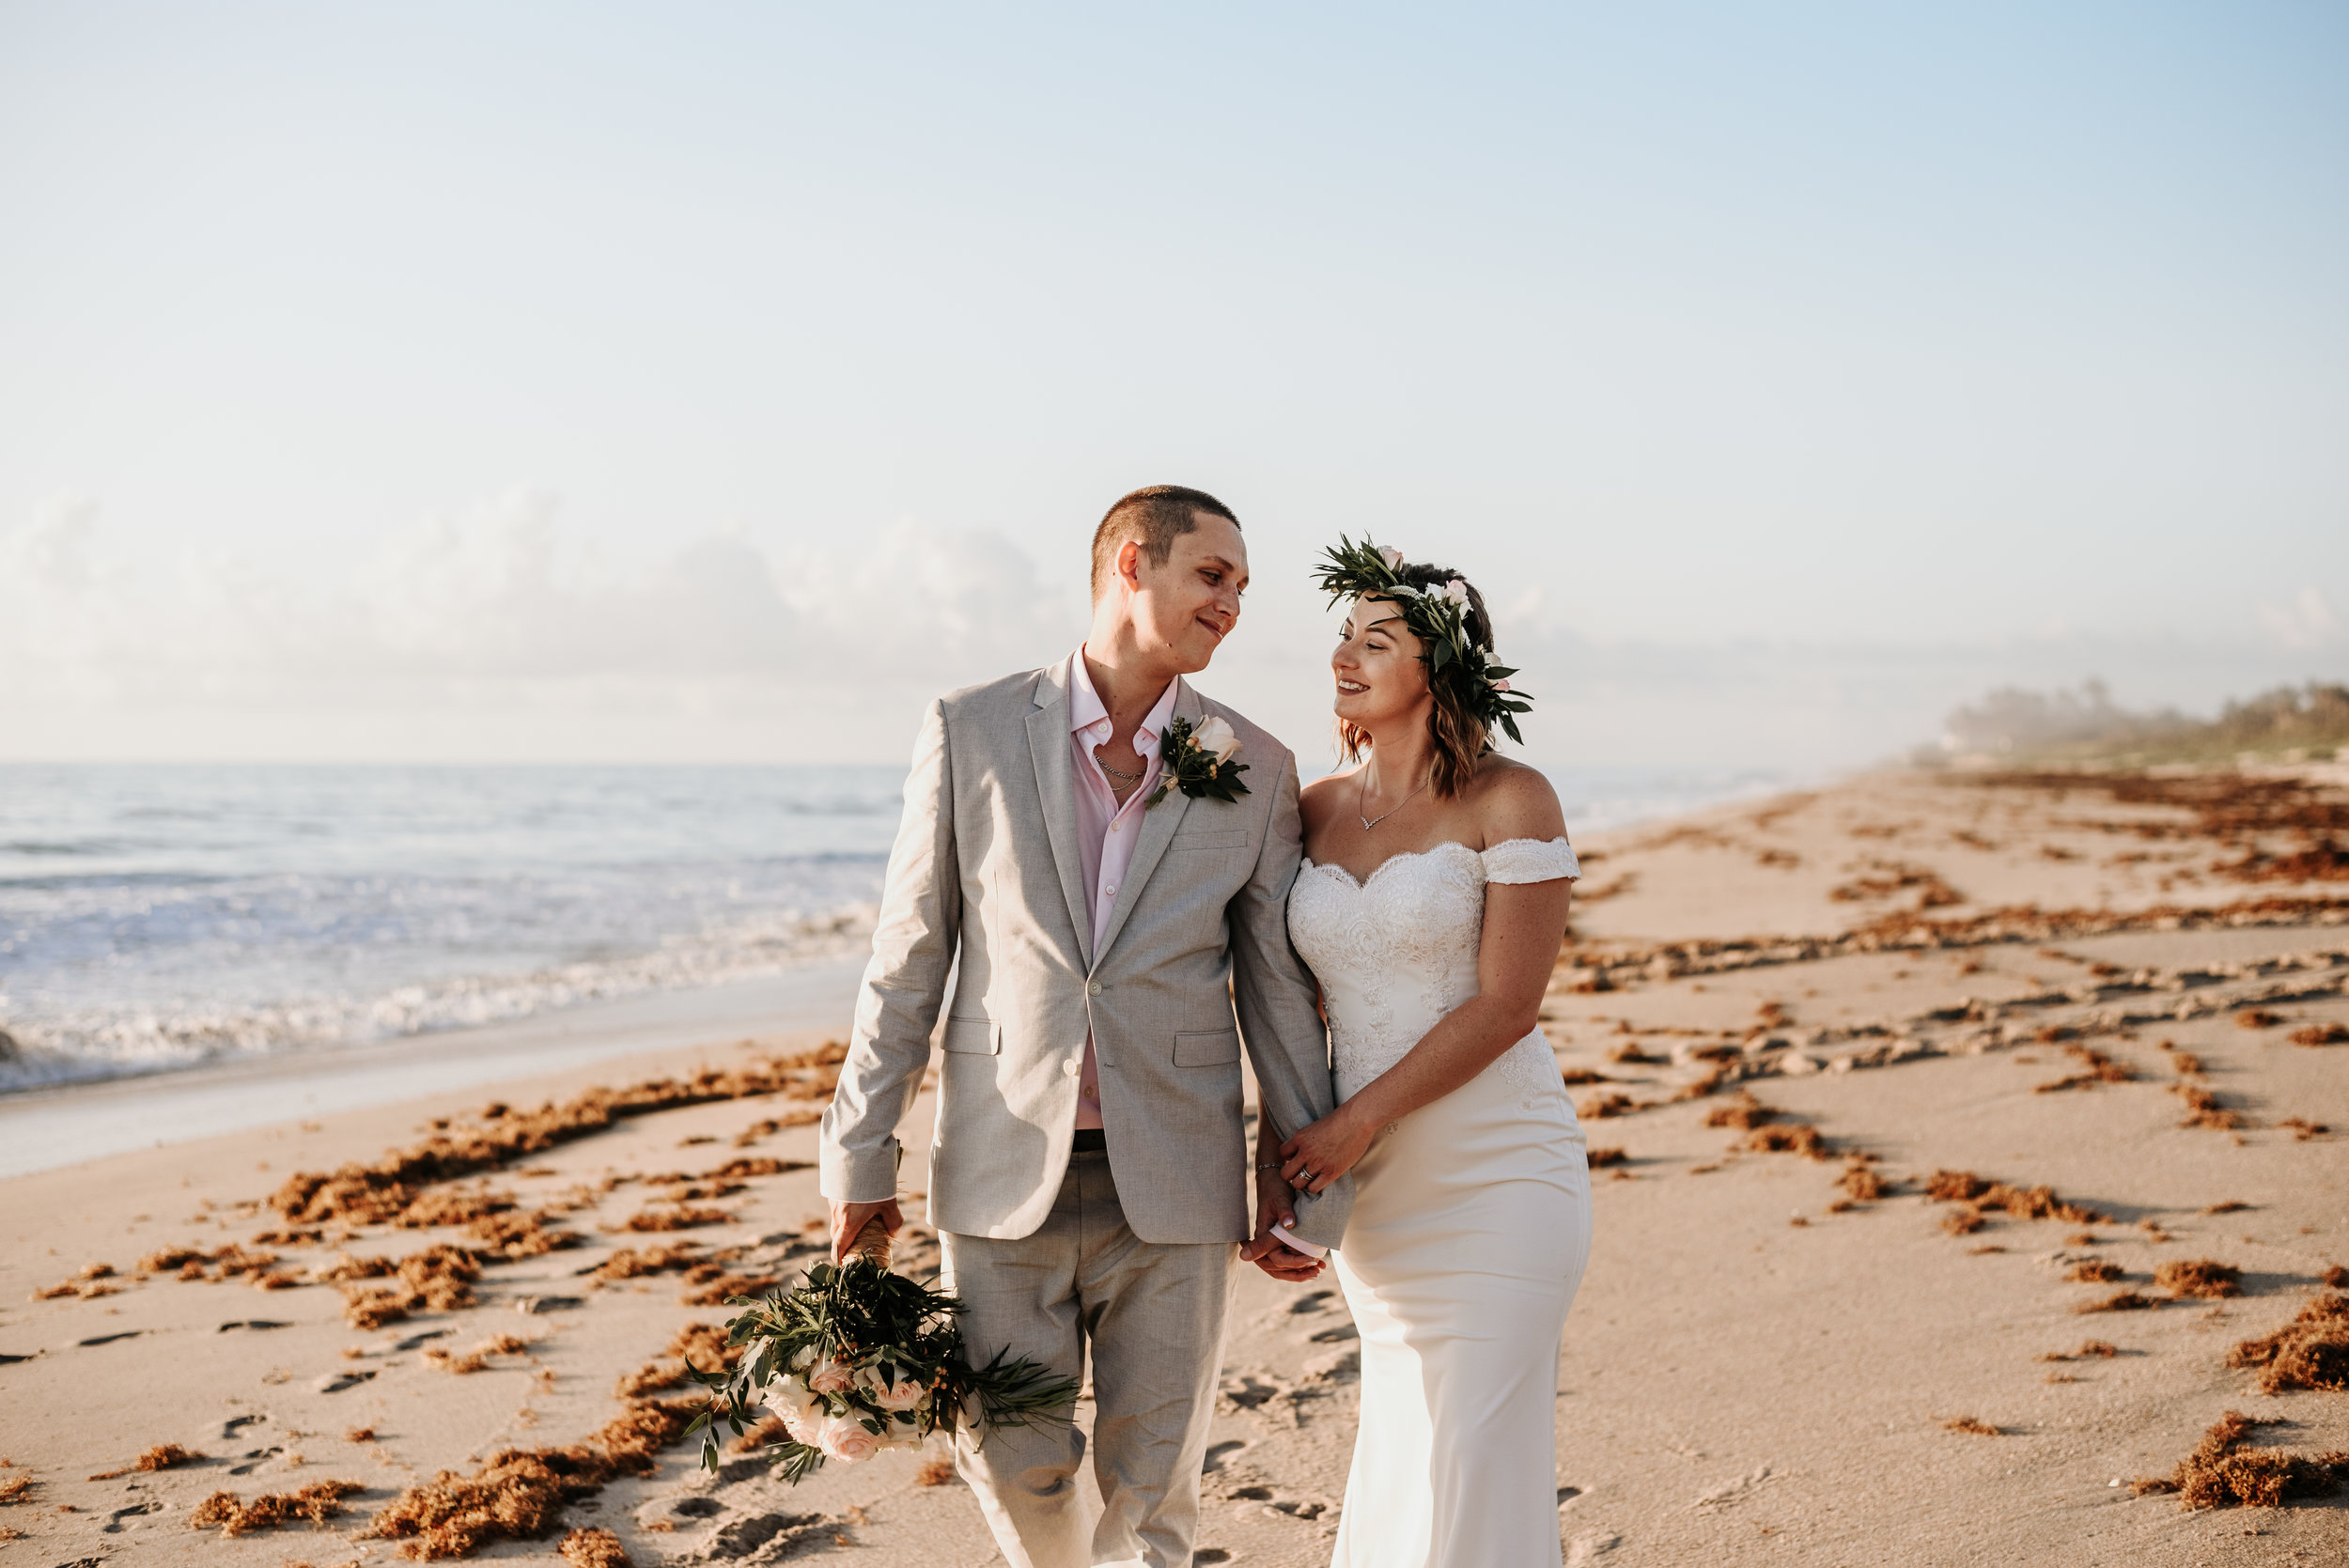 Crystal-Nick-Wedding-Vero-Beach-Florida-Treasure-Shores-Beach-Photography-by-V-3018.jpg